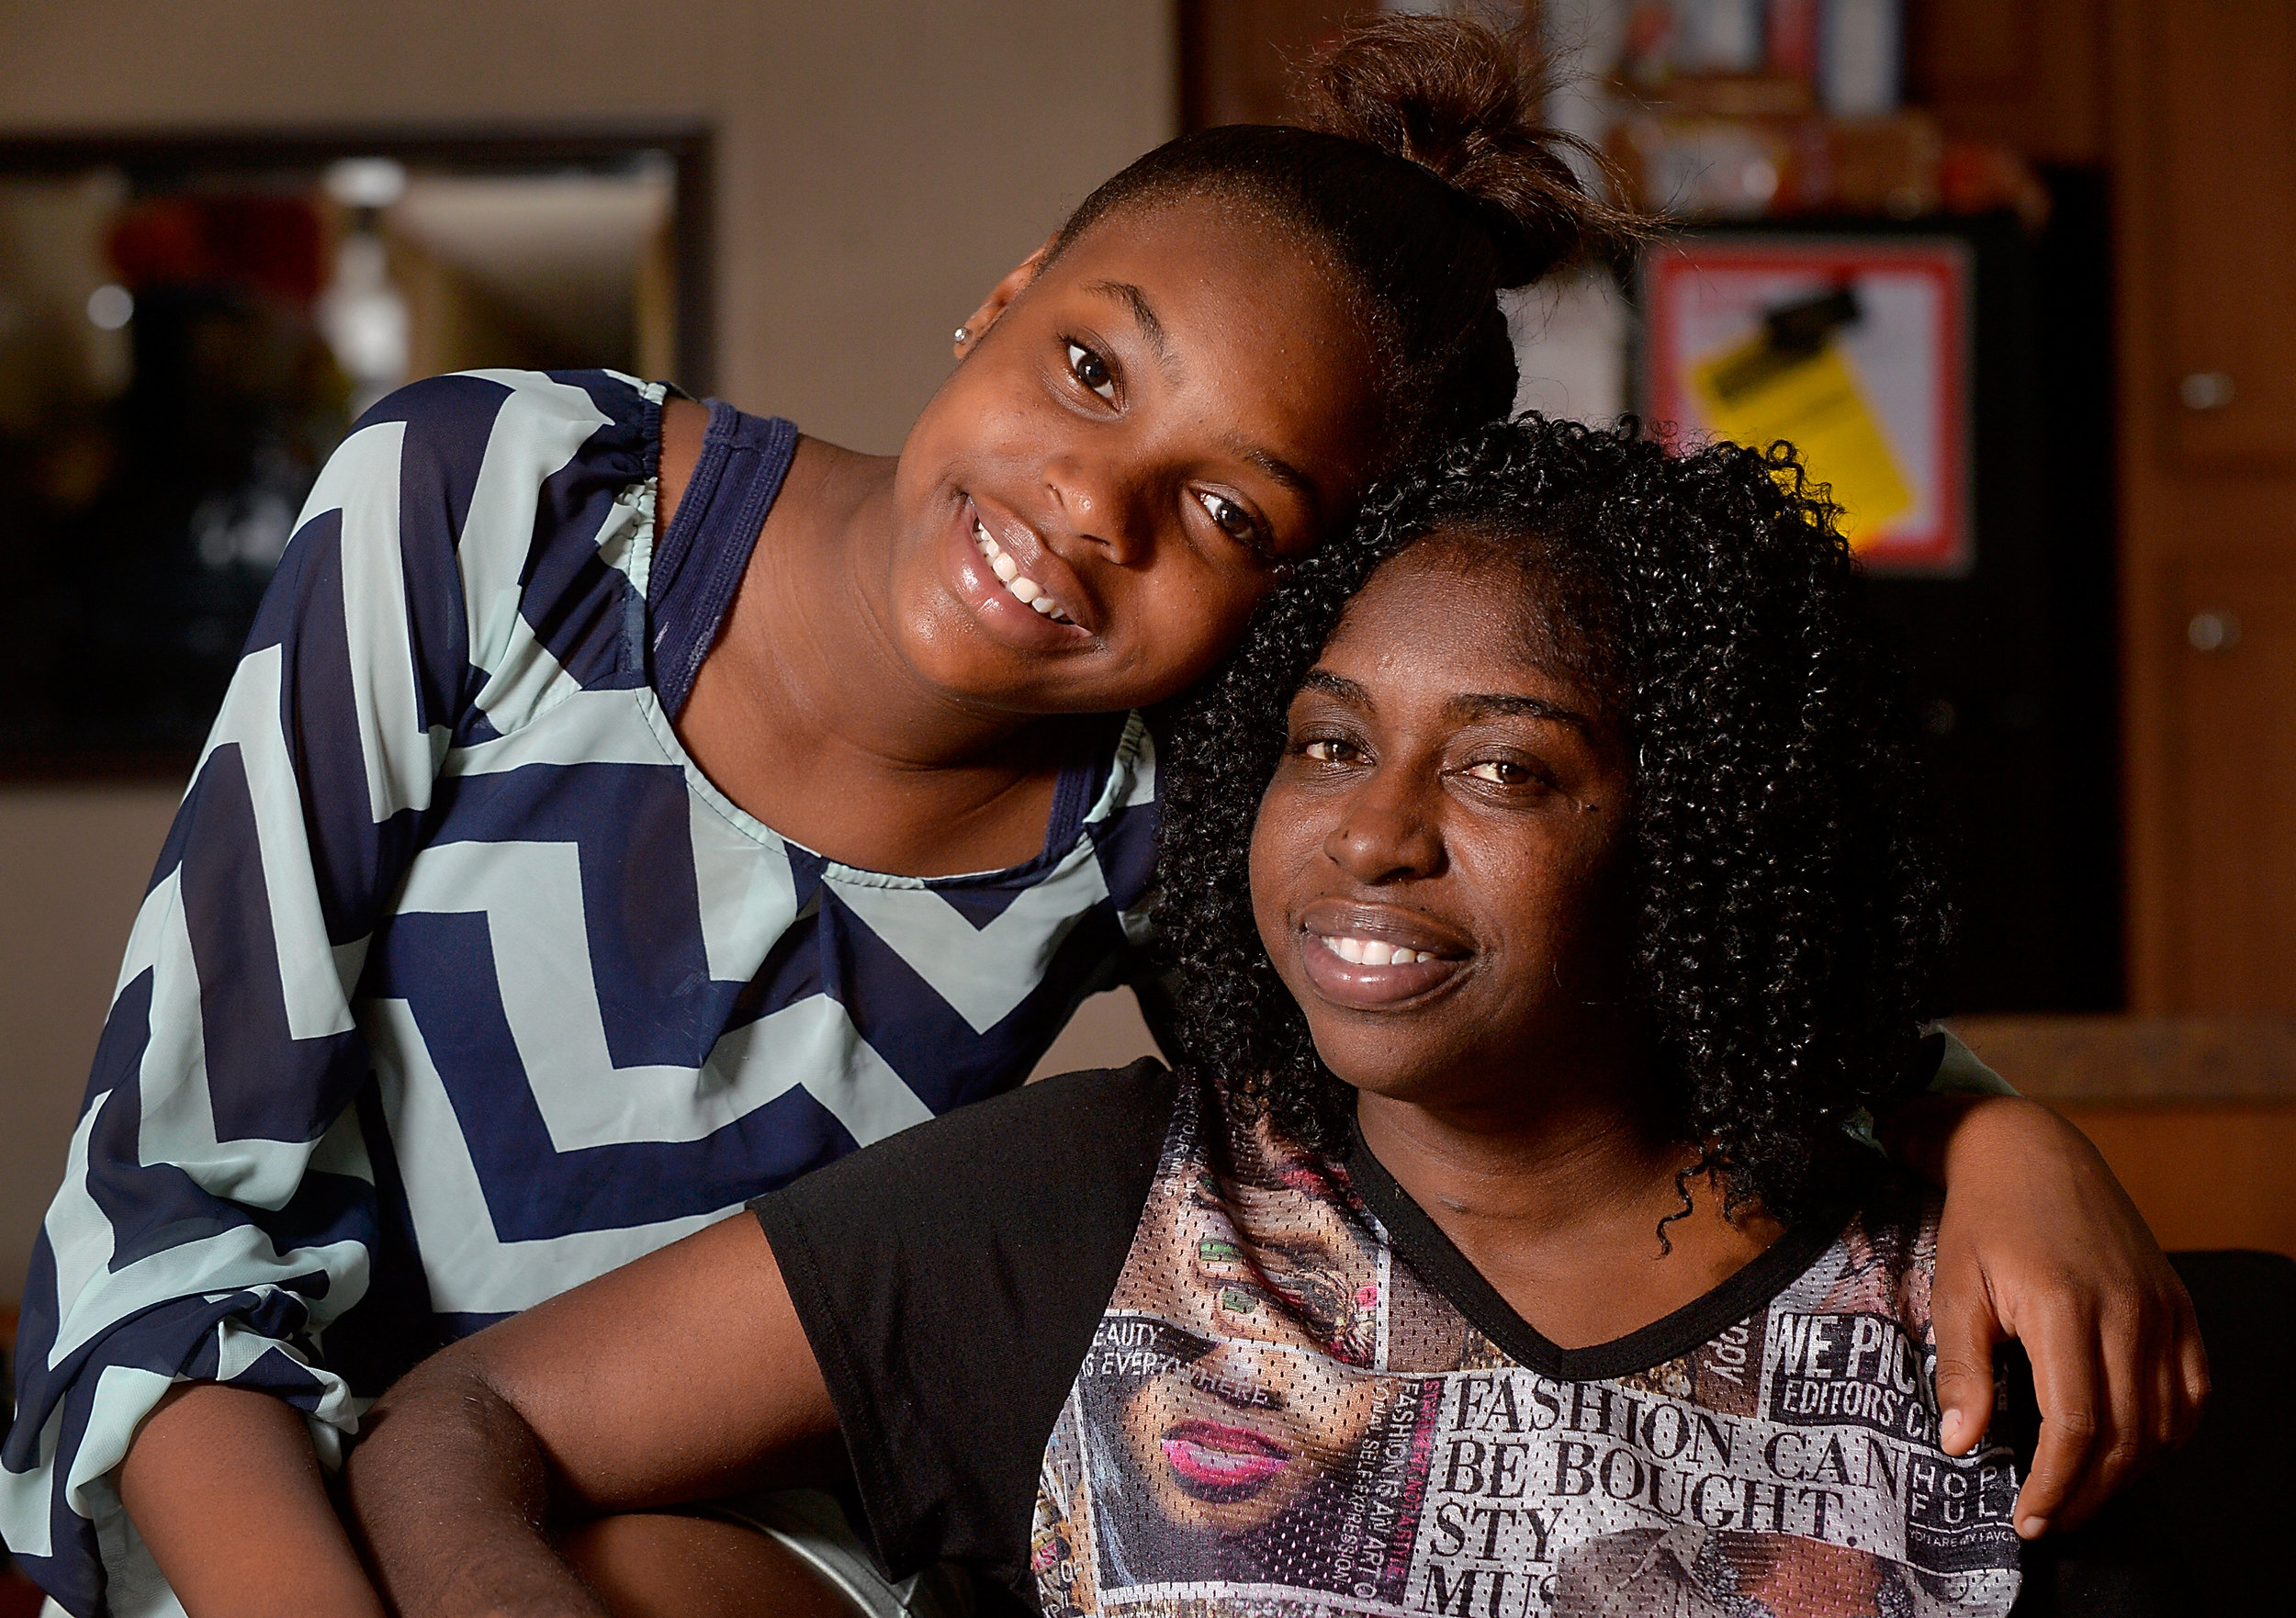 Lateisha Sallah and her daughter Jasmine, 11, in their home in Raleigh, N.C., on Thursday, June 16, 2016. During a health crisis that led to job loss and homelessness, Lateisha's daughter was able to receive the IFFS BackPack Buddies program. IFFS, together with other nonprofits, came together to support her while she got back on her feet.(Photo by Sara D. Davis)